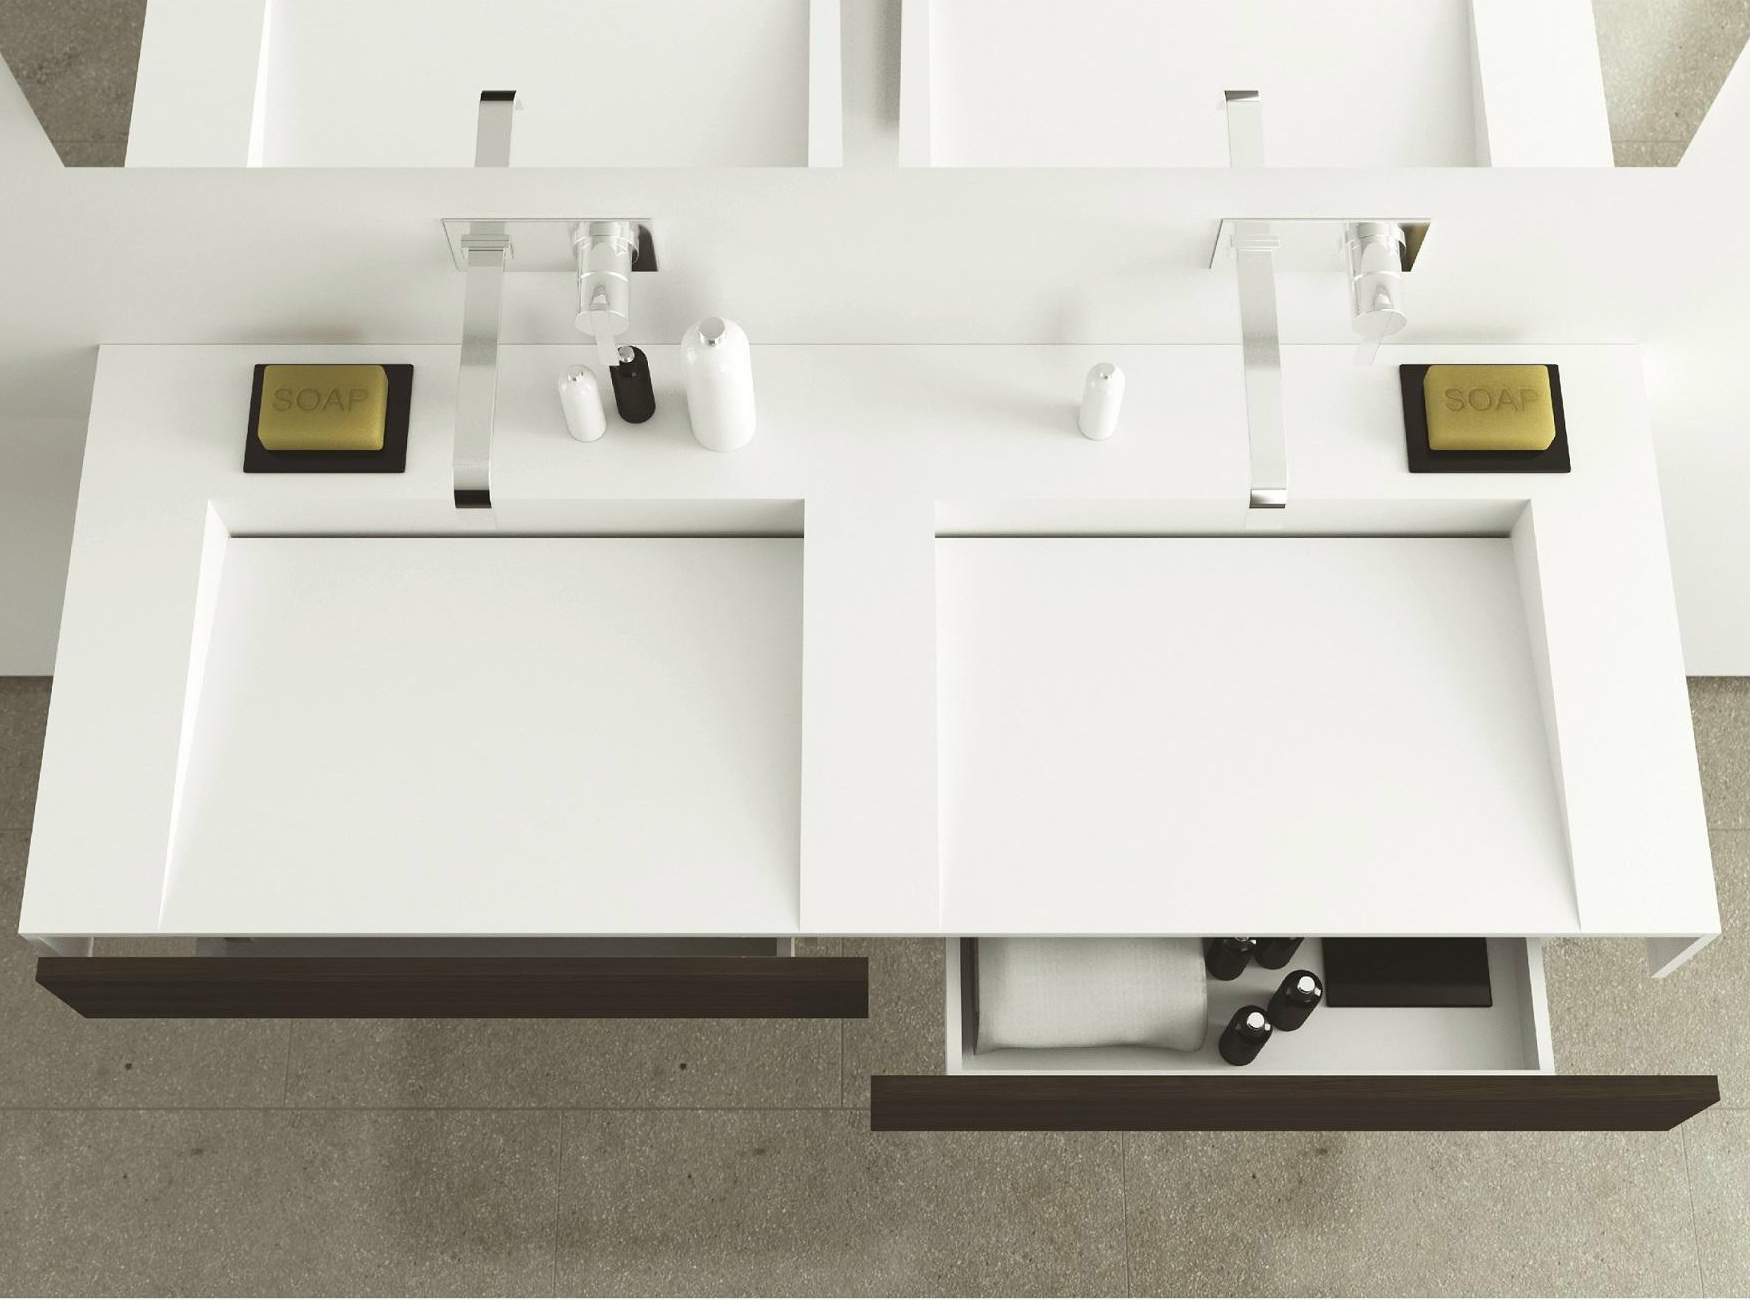 lavabo doppio sospeso in corian con cassetti slim wood by moma design by archiplast. Black Bedroom Furniture Sets. Home Design Ideas